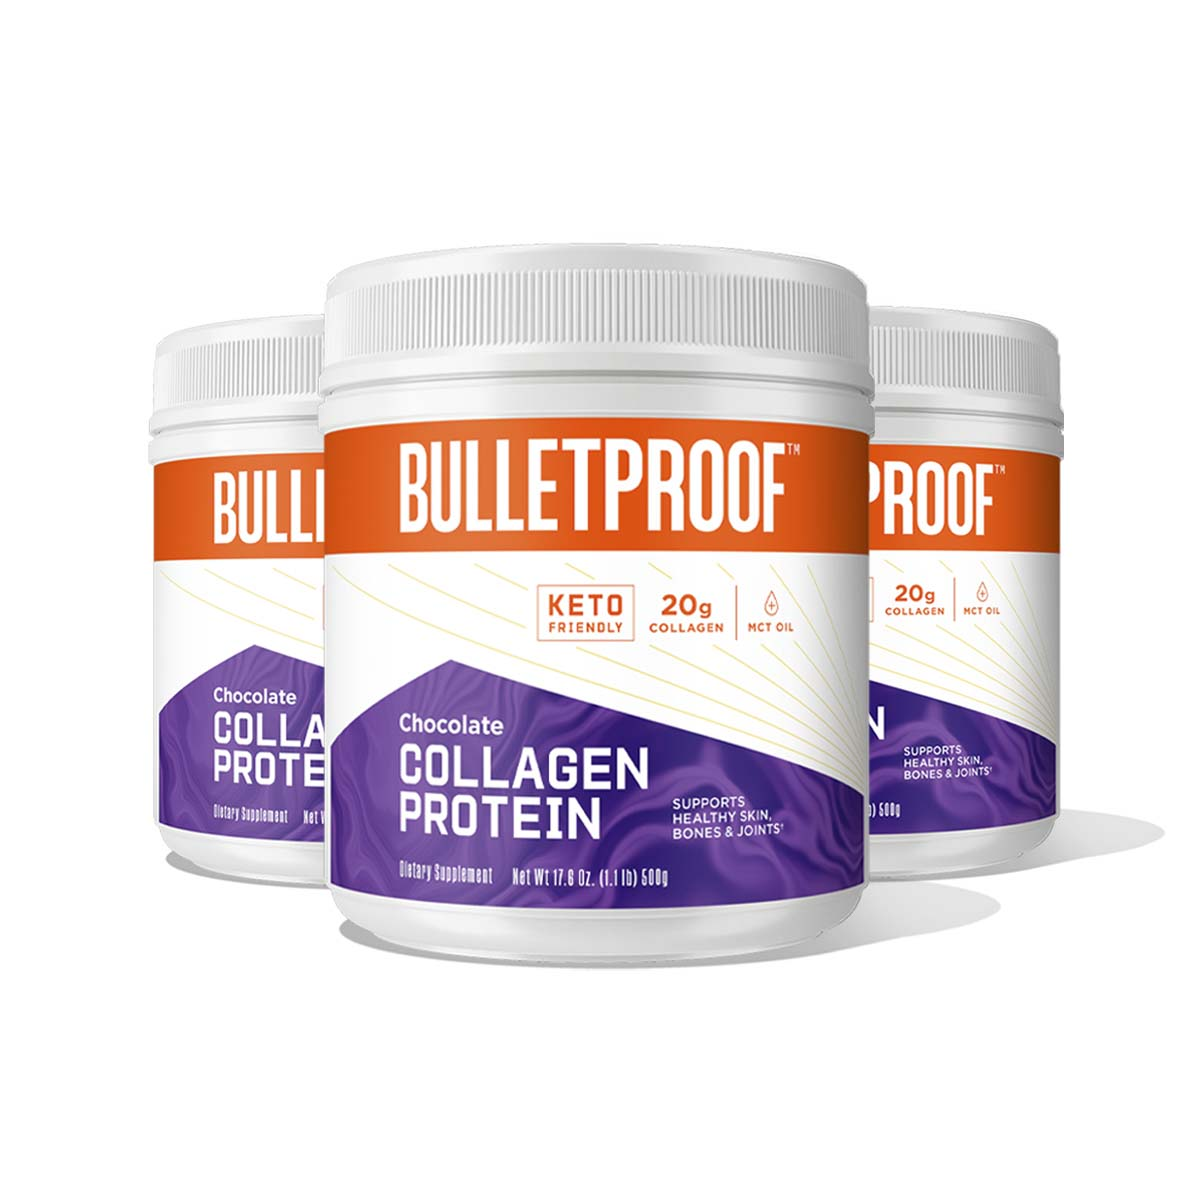 Bulletproof Chocolate Flavored Collagen Protein - 3 Pack